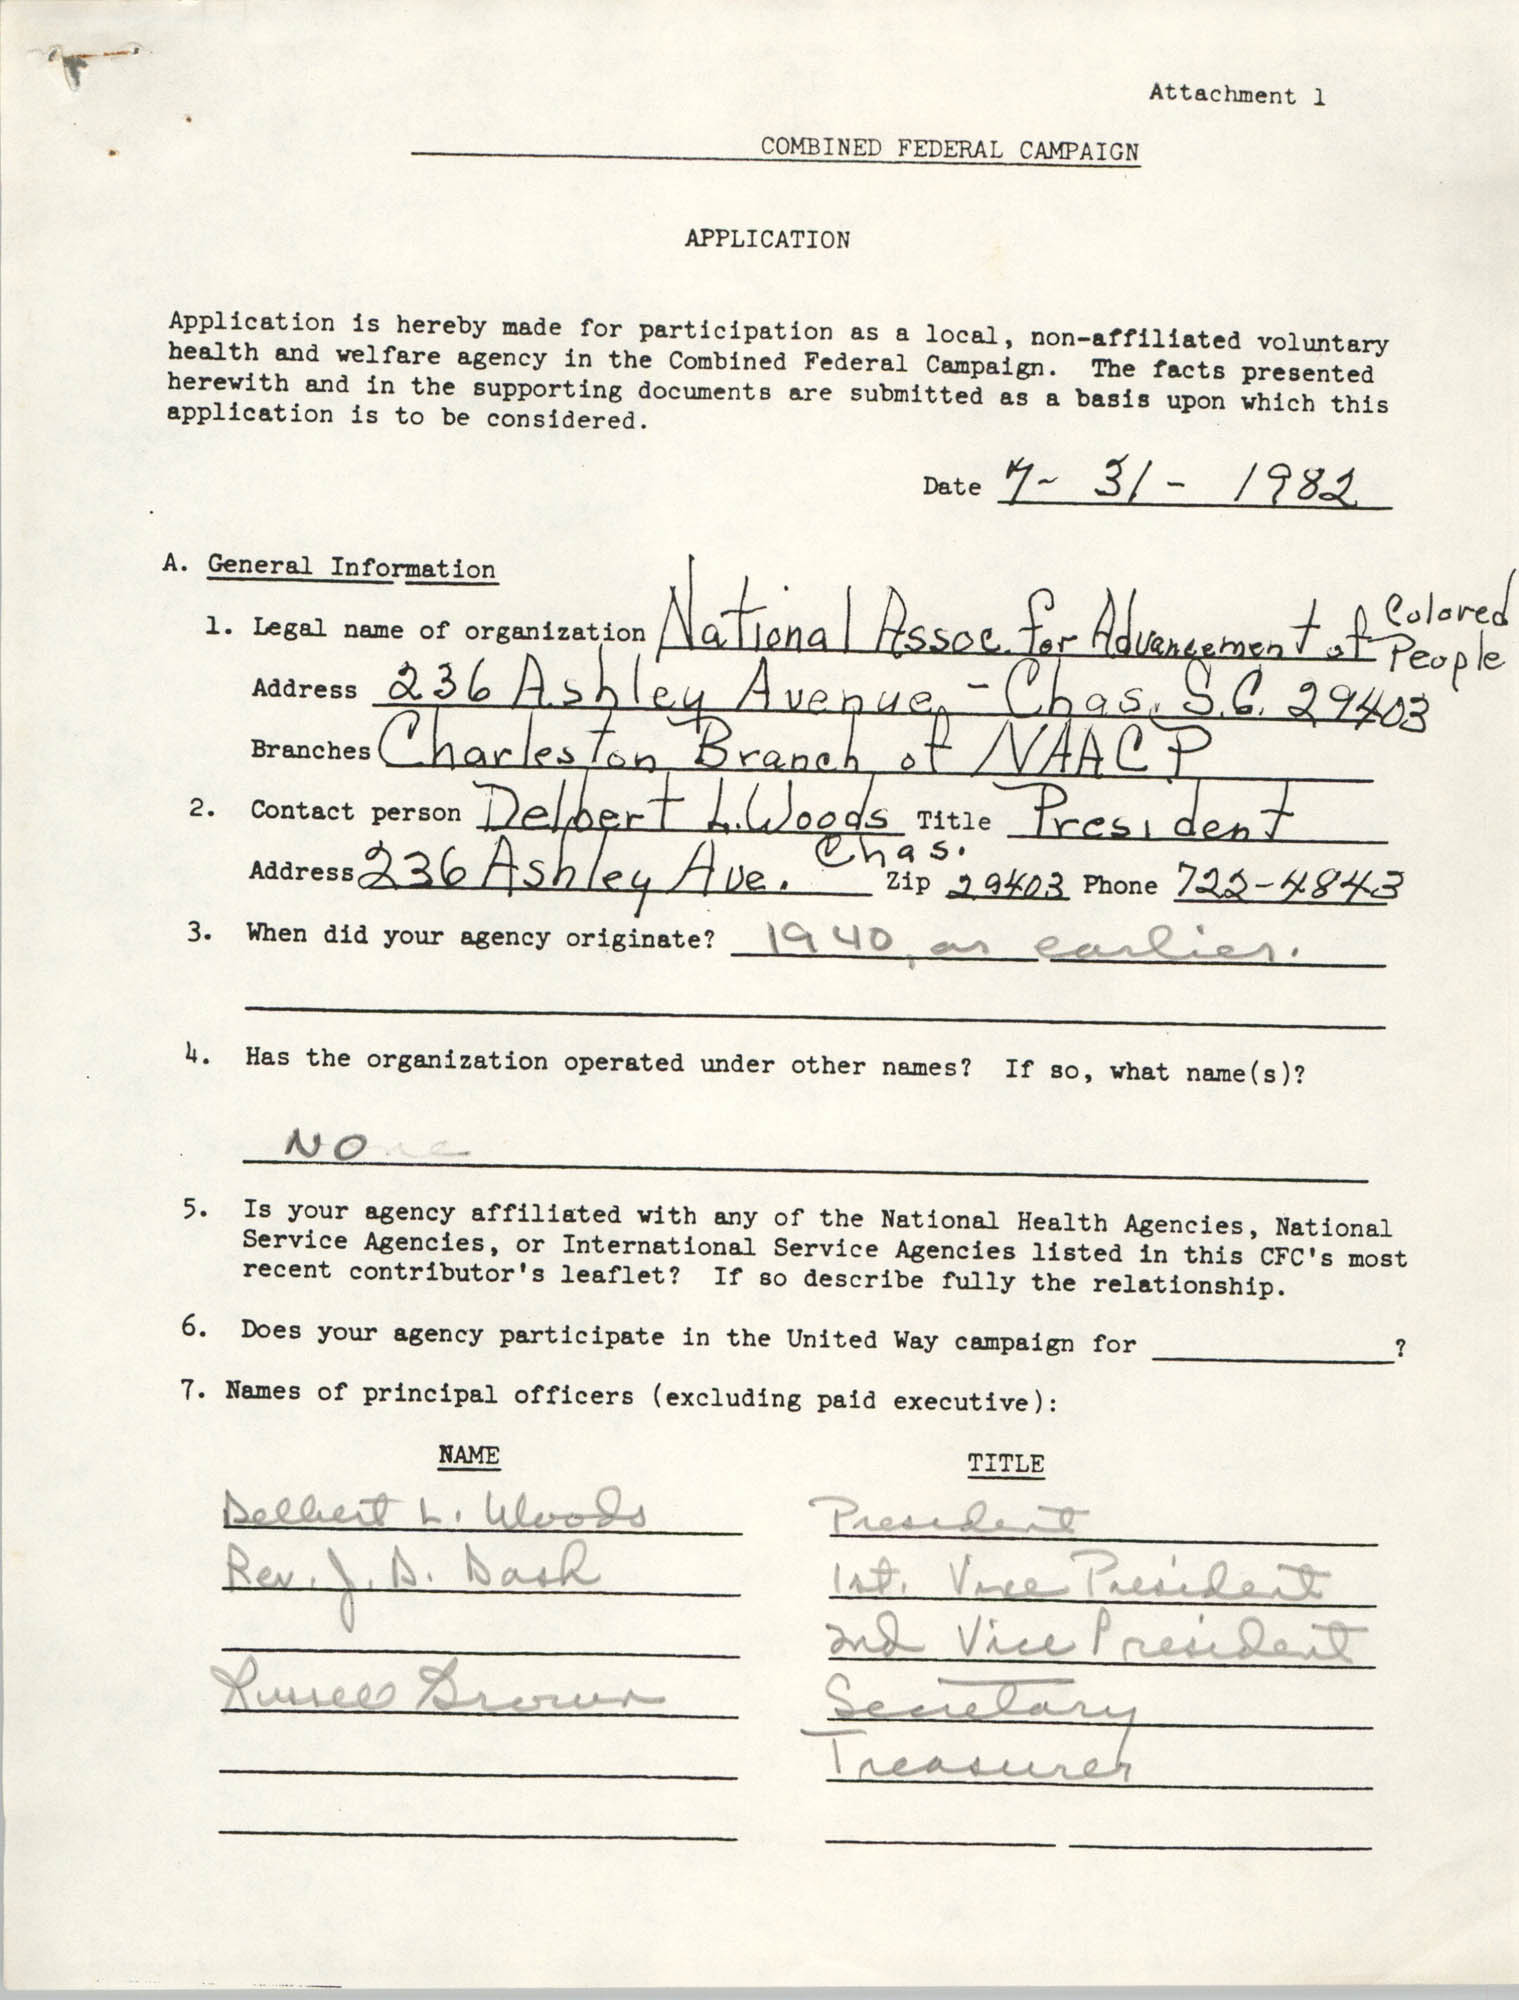 Combined Federal Campaign Application, July 31, 1982, Page 1